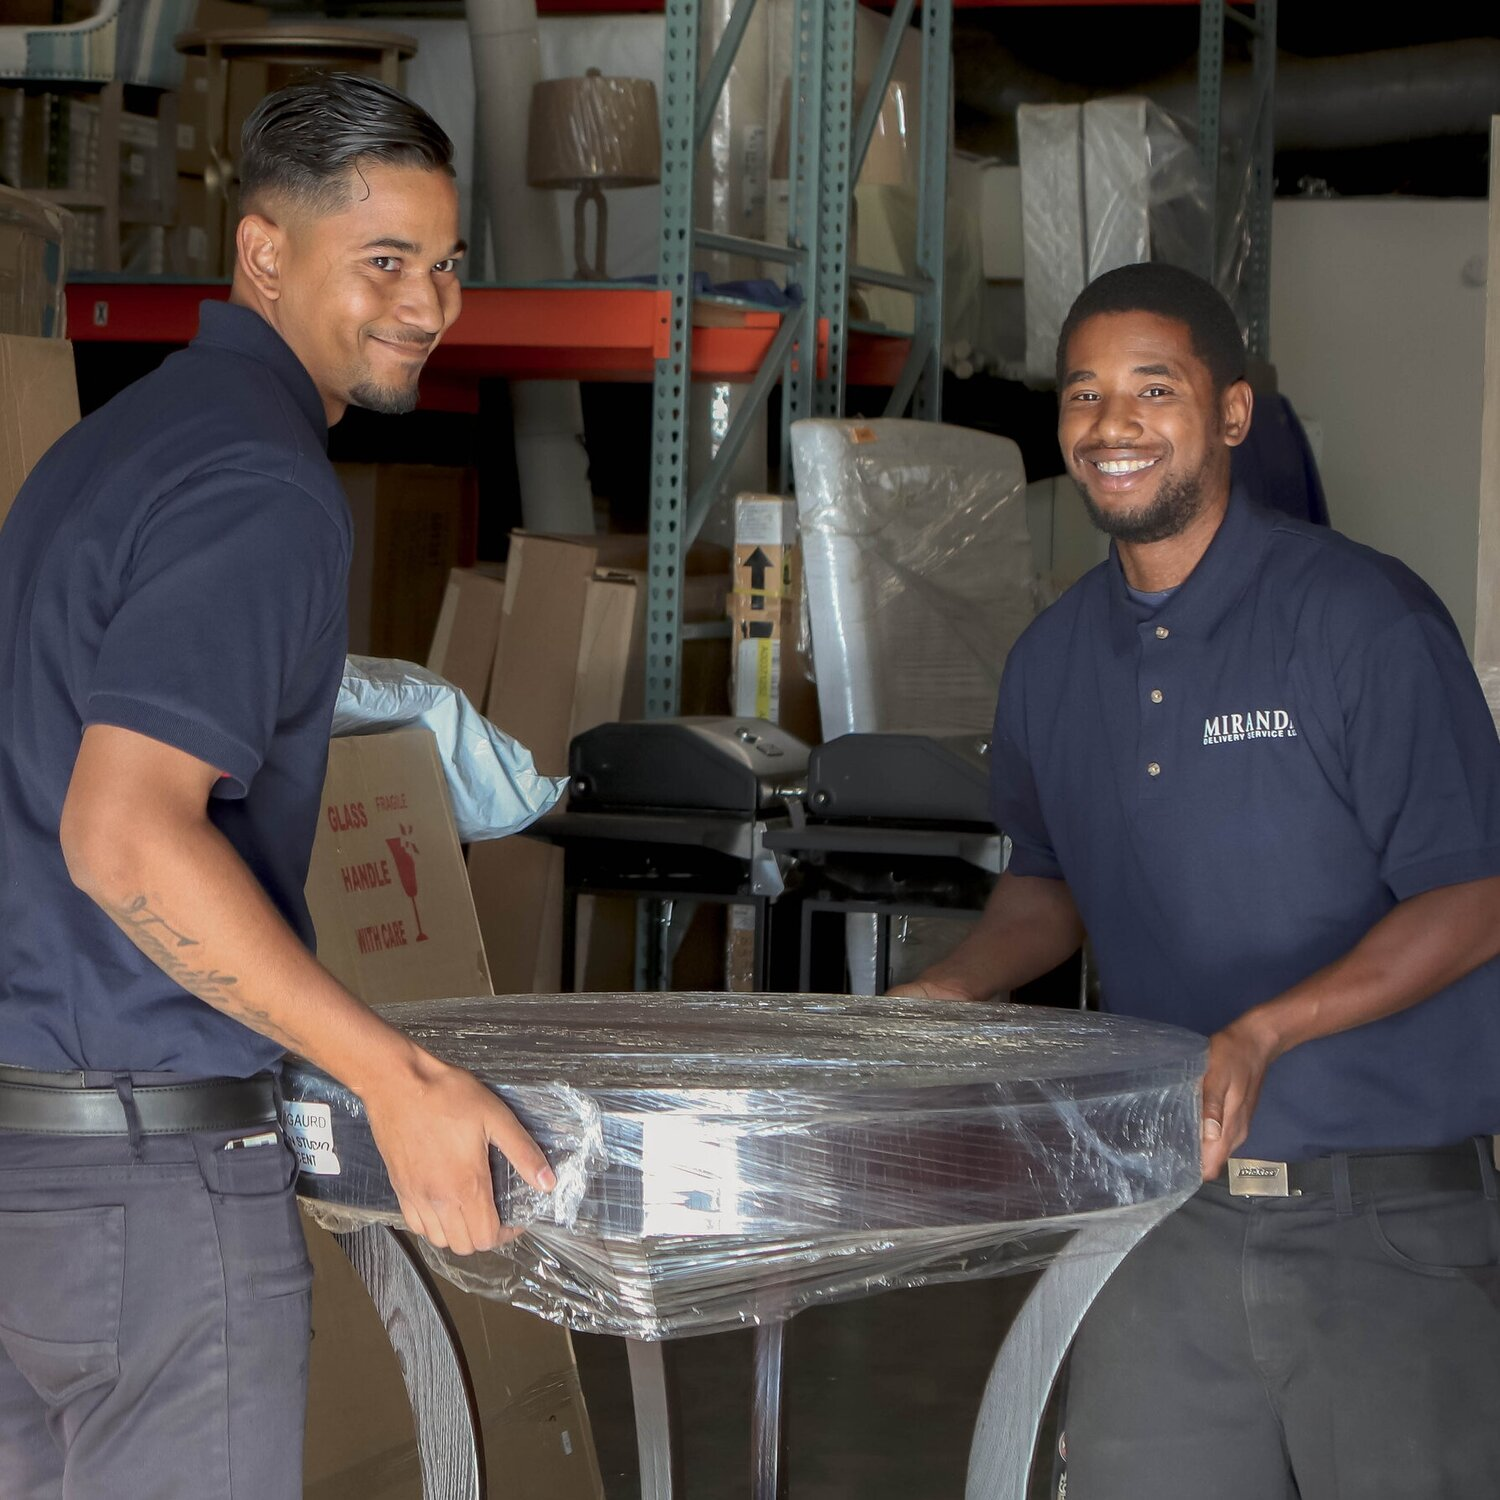 Our smiling, uniformed staff will make your delivery problems disappear.